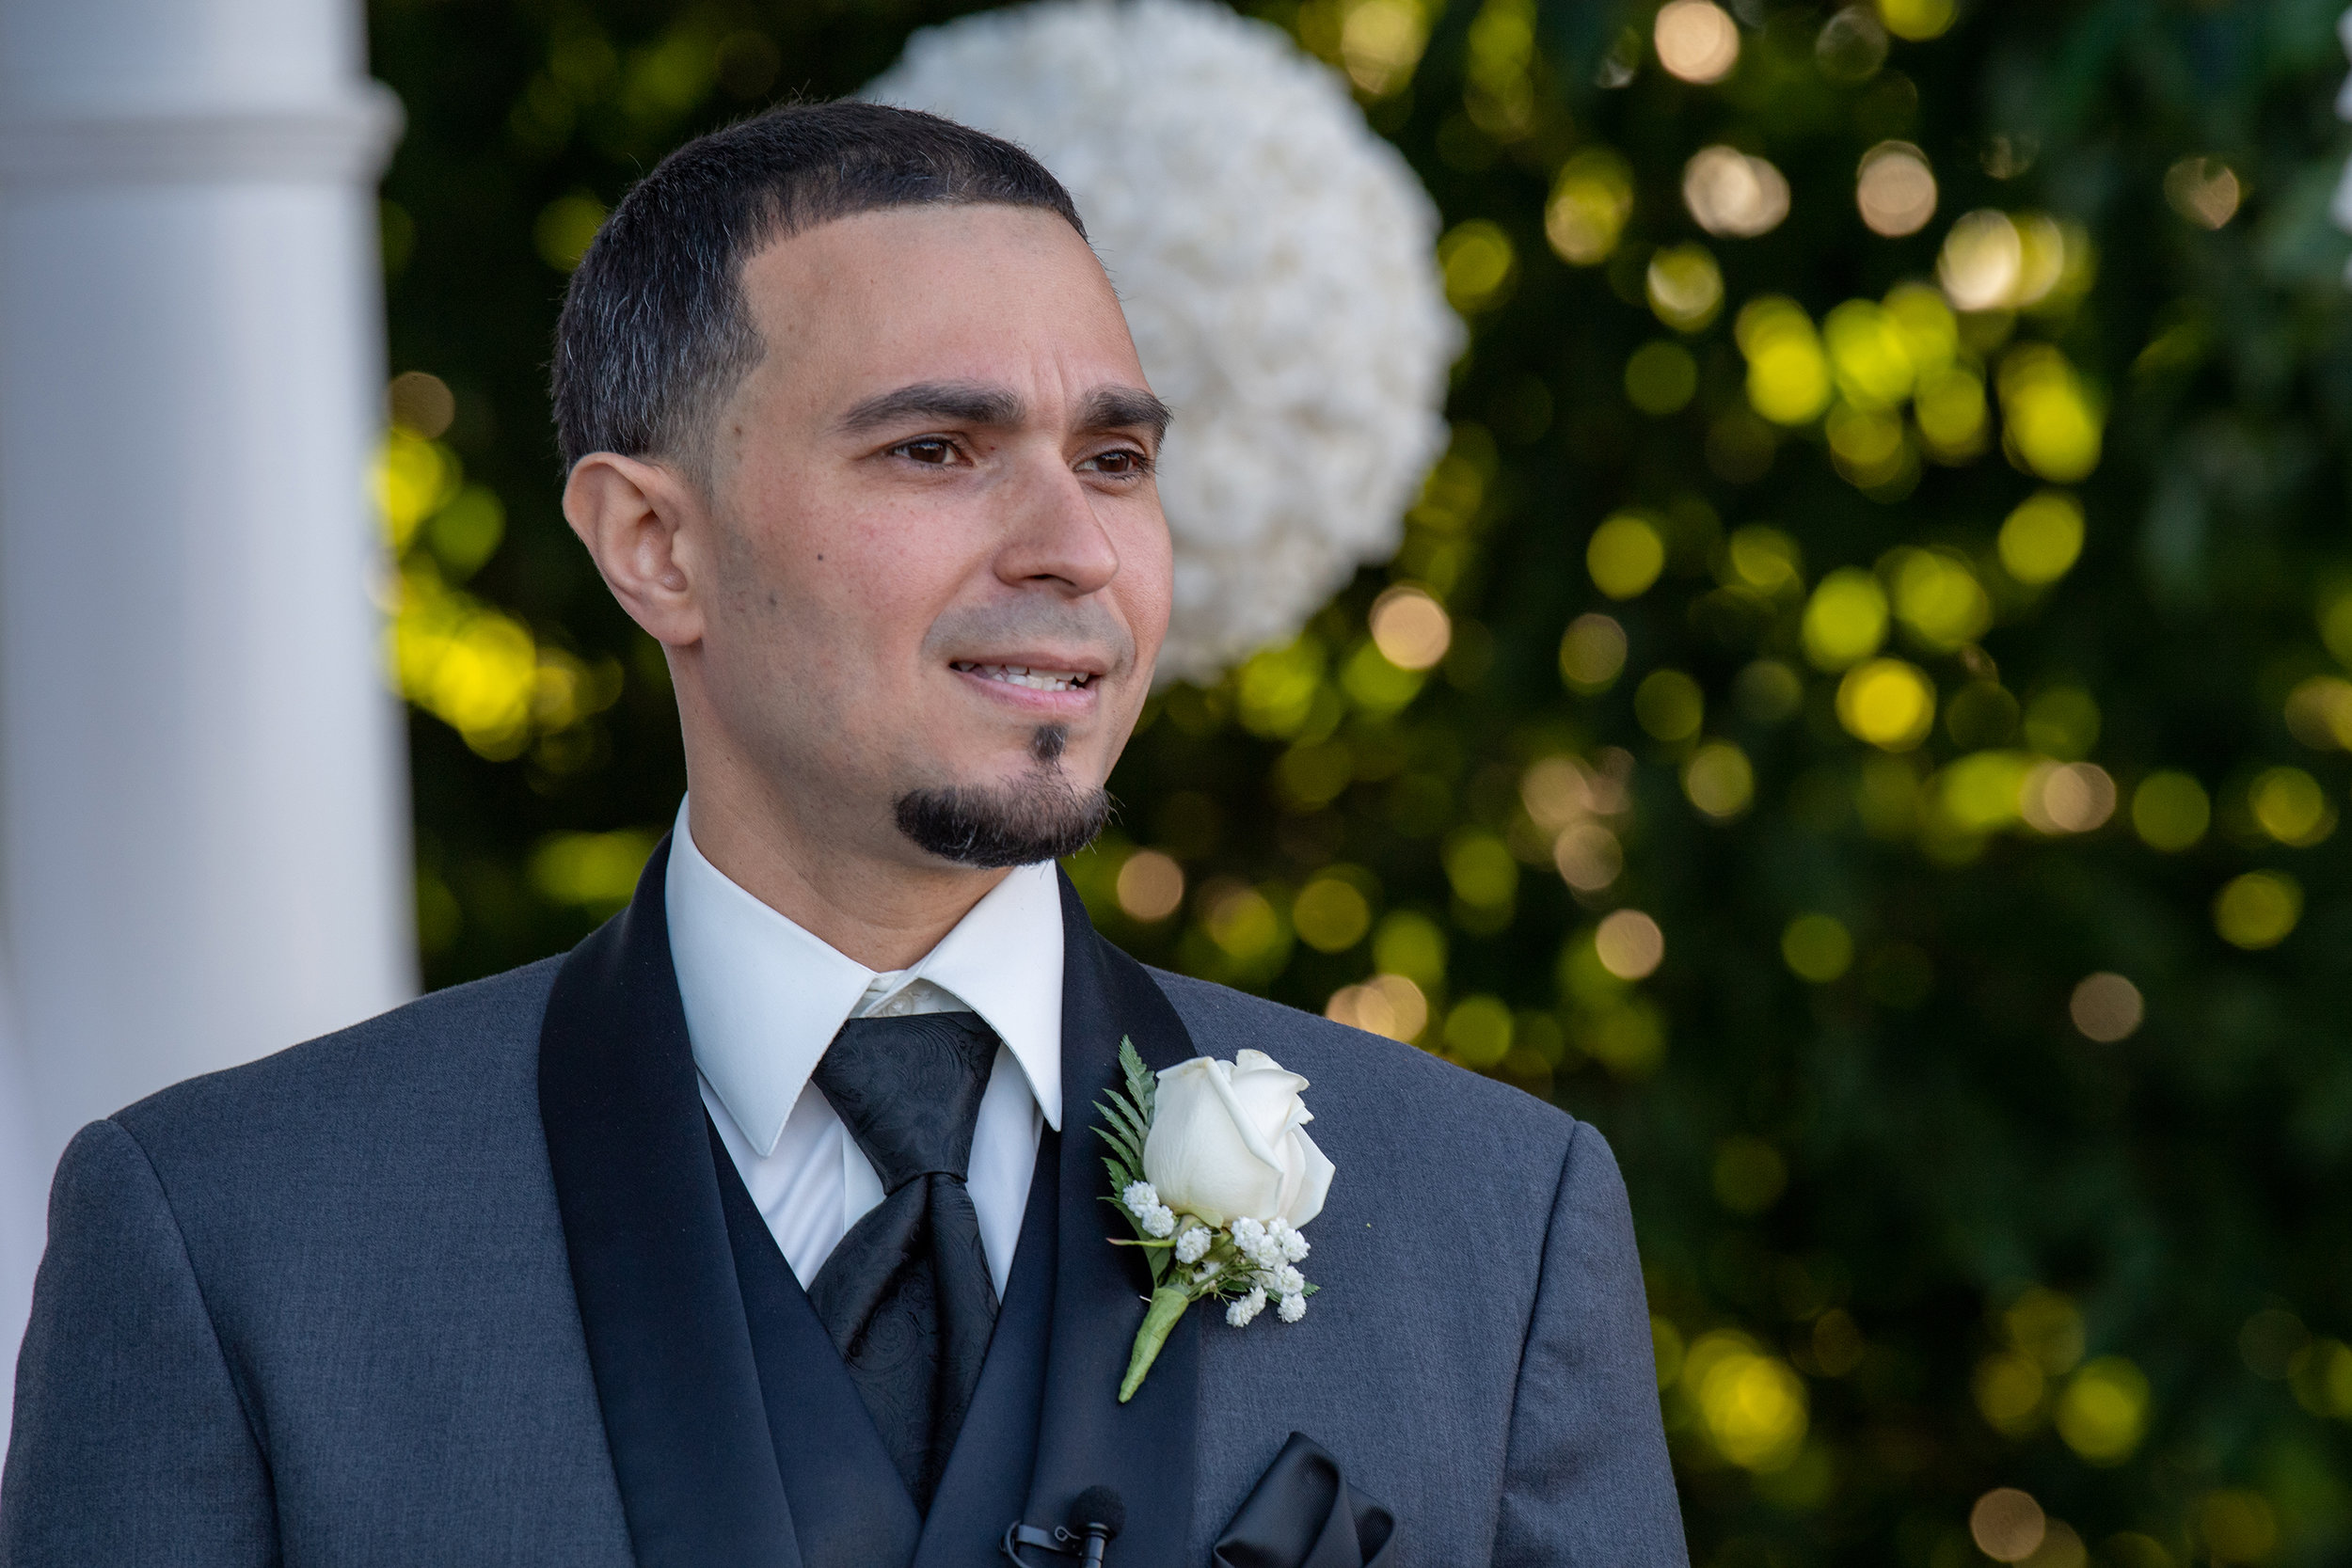 GROOM HOLDING BACK TEARS AS HIS BRIDE WALKS UP THE AISLE.jpg